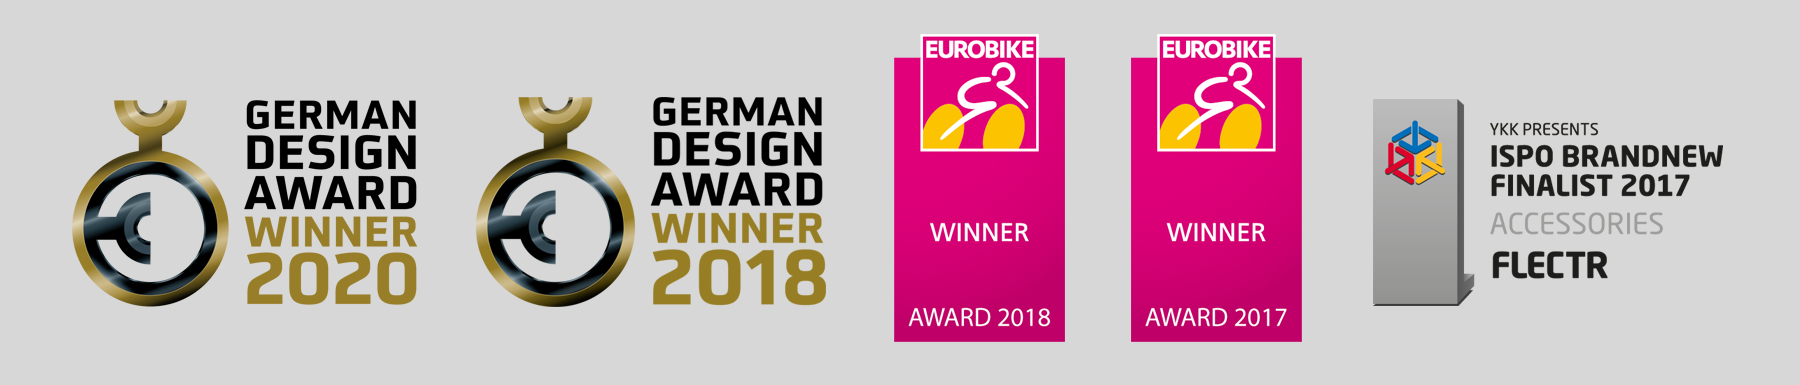 FLECTR BIKE - German Design Award Winner 2020 - German Design Award Winner 2018 - EUROBIKE AWARD WINNER 2018 - ISPO BRAND-NEW AWARD 2017 - EUROBIKE AWARD WINNER 2017